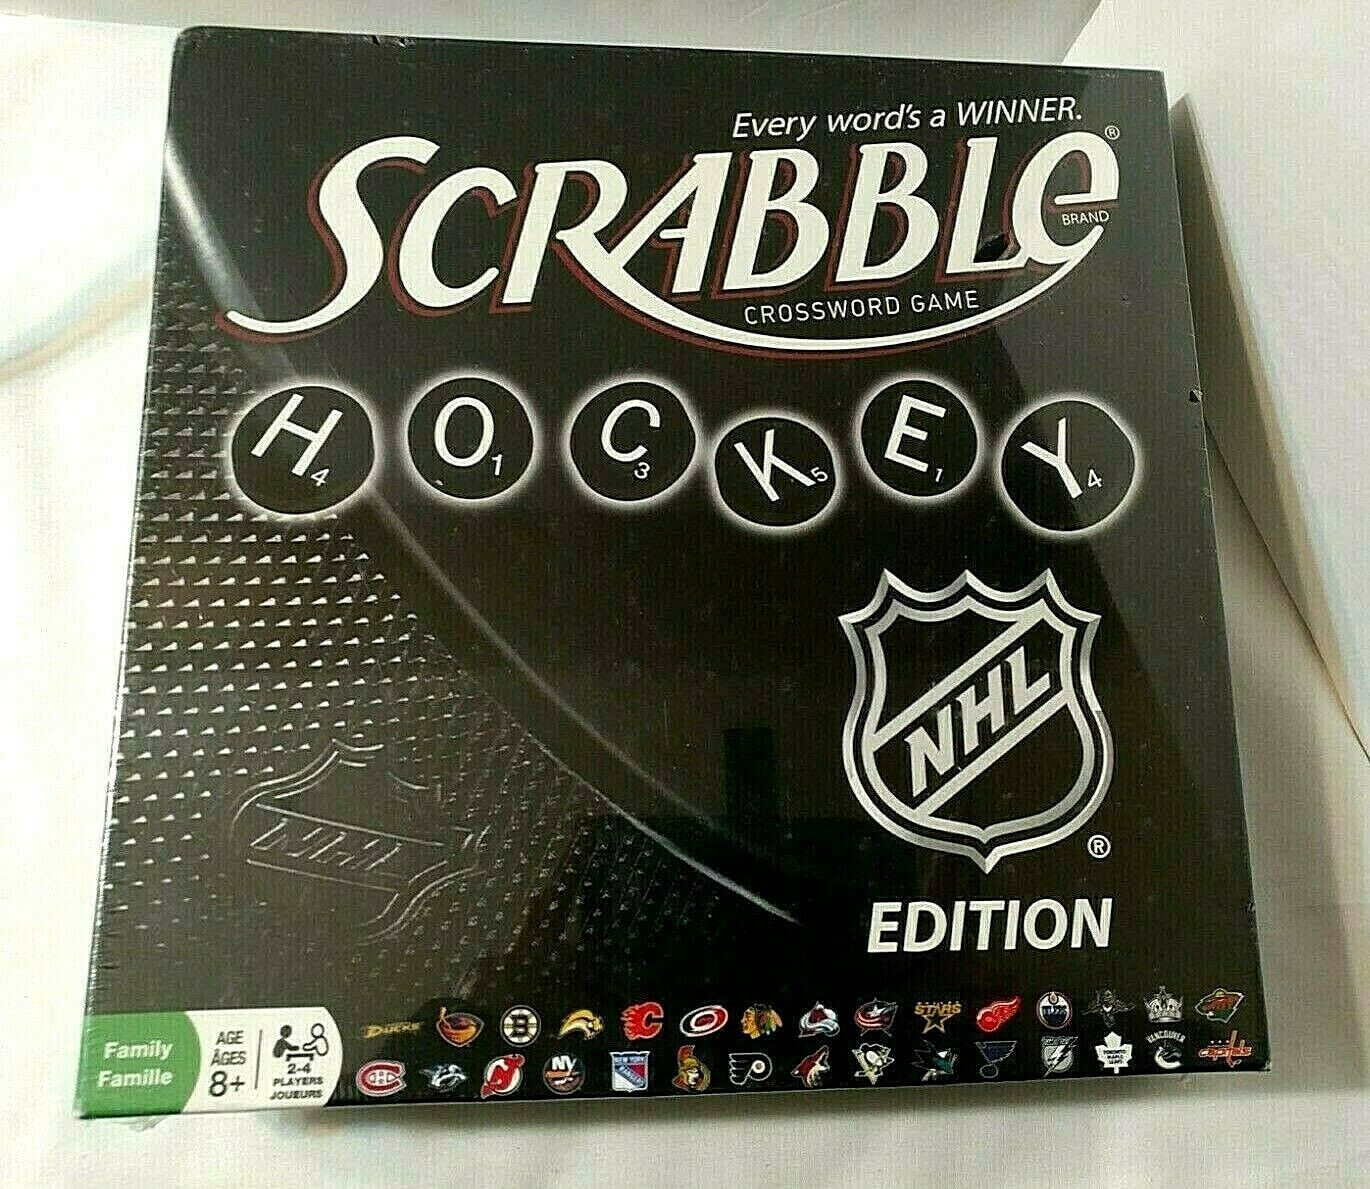 Primary image for NHL Hockey Edition Scrabble Crossword Game NEW SEALED Incl Bonus NHL Dictionary